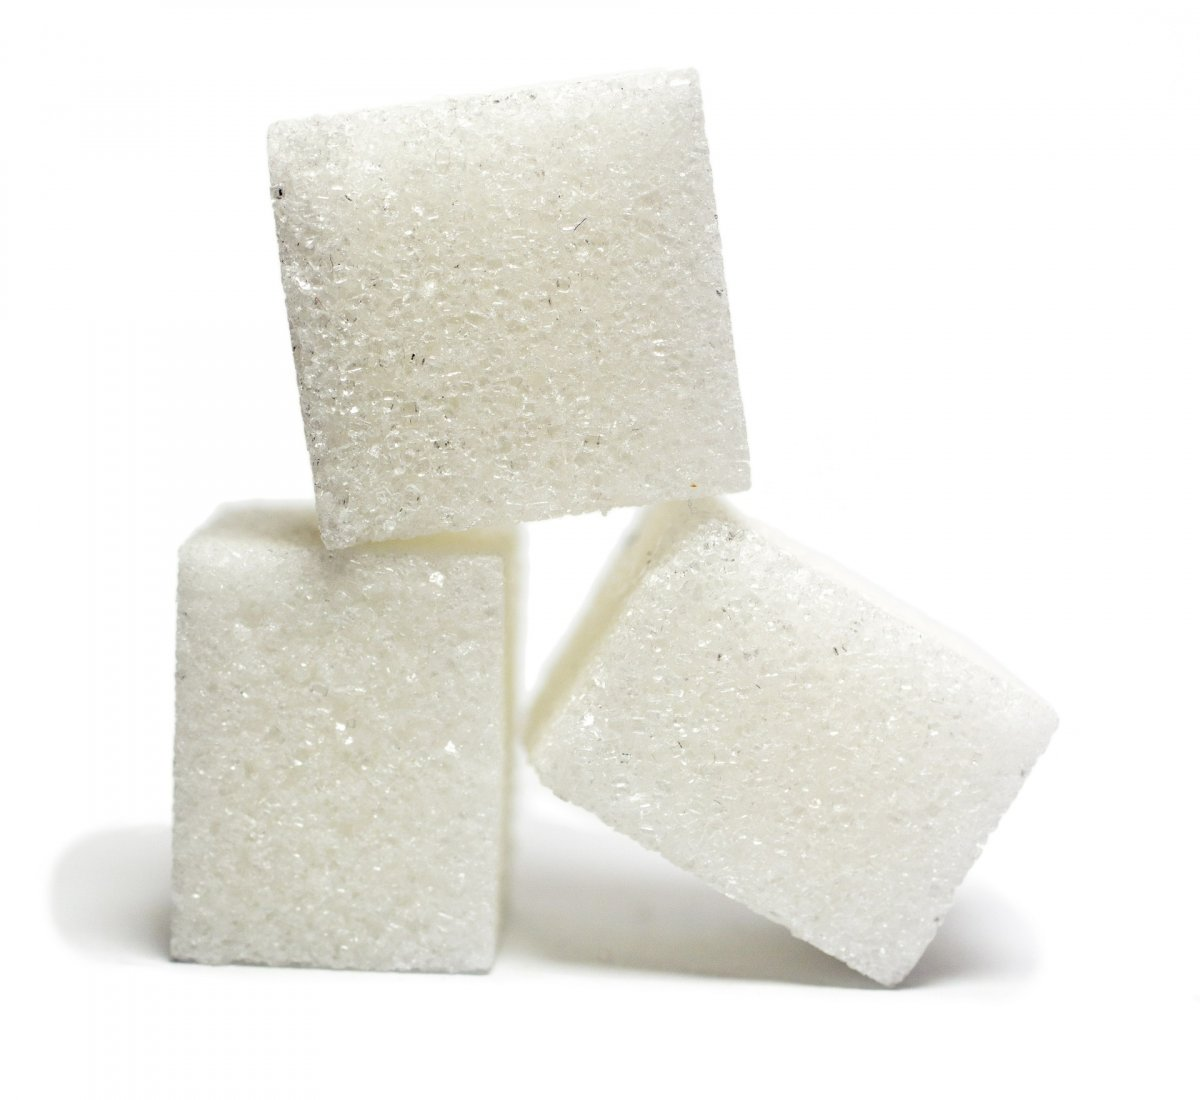 Day 2 can get sugary!  Make sure that you offer good quality white sugar that is clean and free of dust or insects.